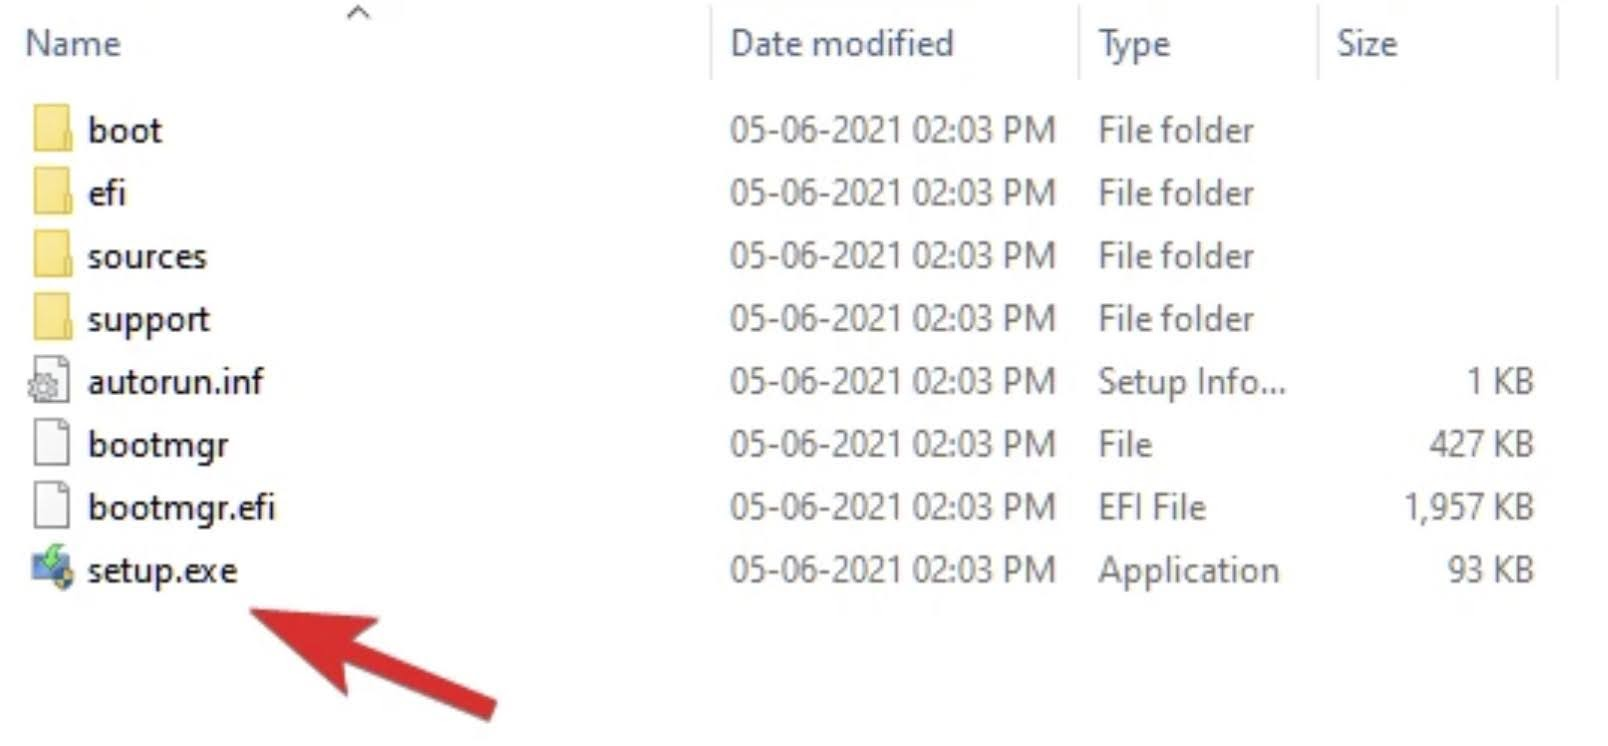 Open the mounted drive and double-click on the setup.exe file to start the Windows 11 Insider Preview installation.